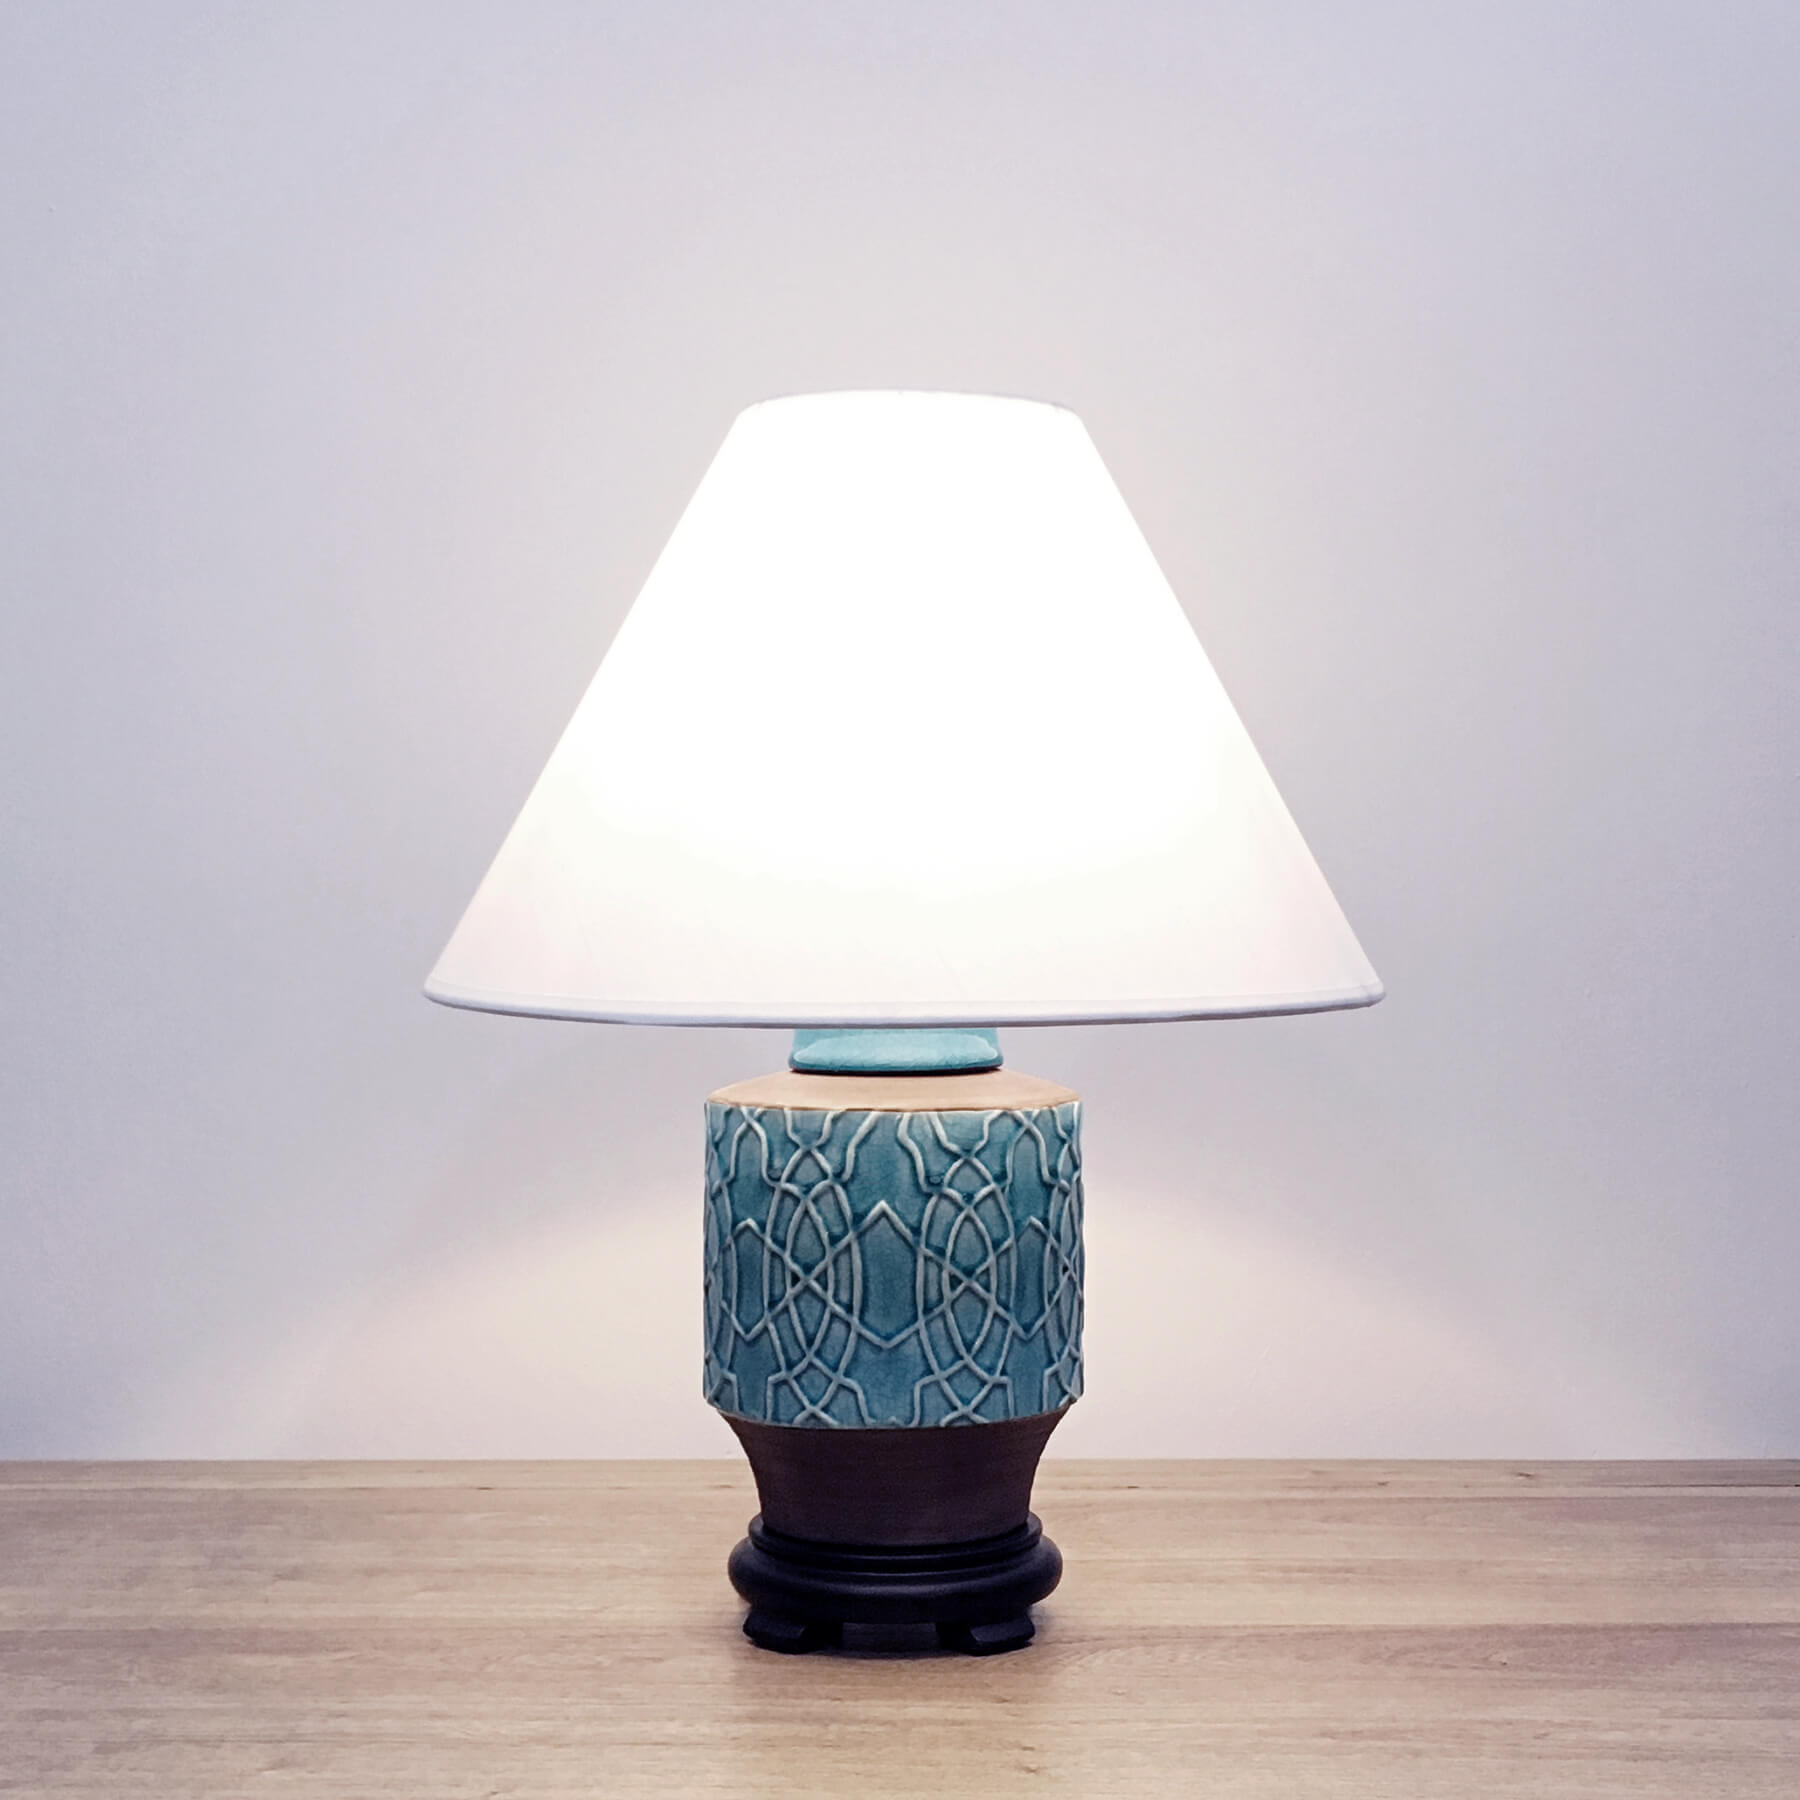 Ceramic table lamp mz tqeth s1 just anthony mz tqeth s1 aloadofball Image collections